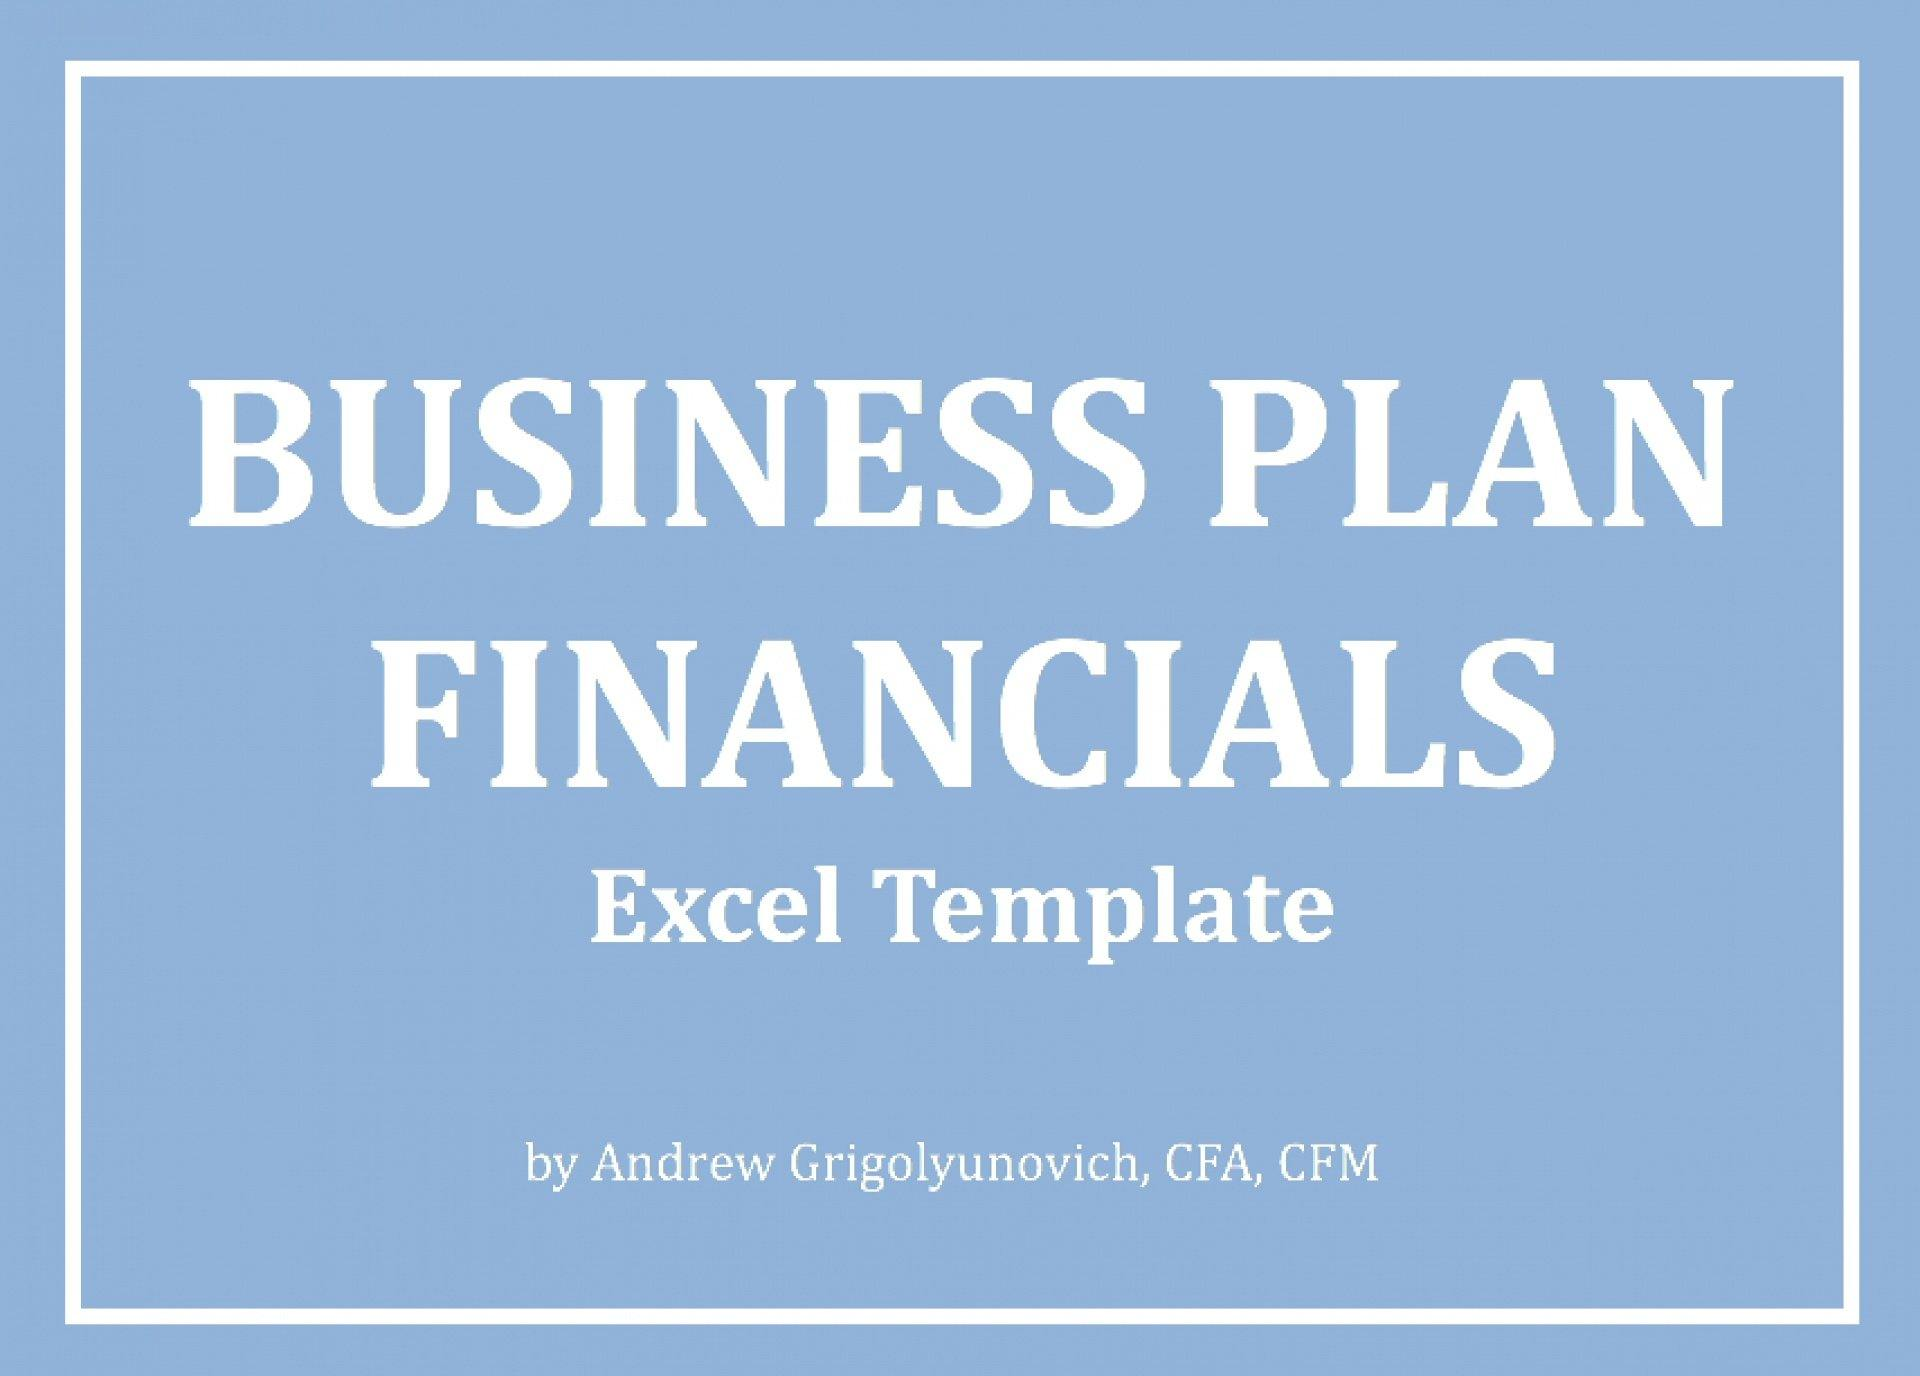 Business Plan Financials Excel Model - Templarket -  Business Templates Marketplace